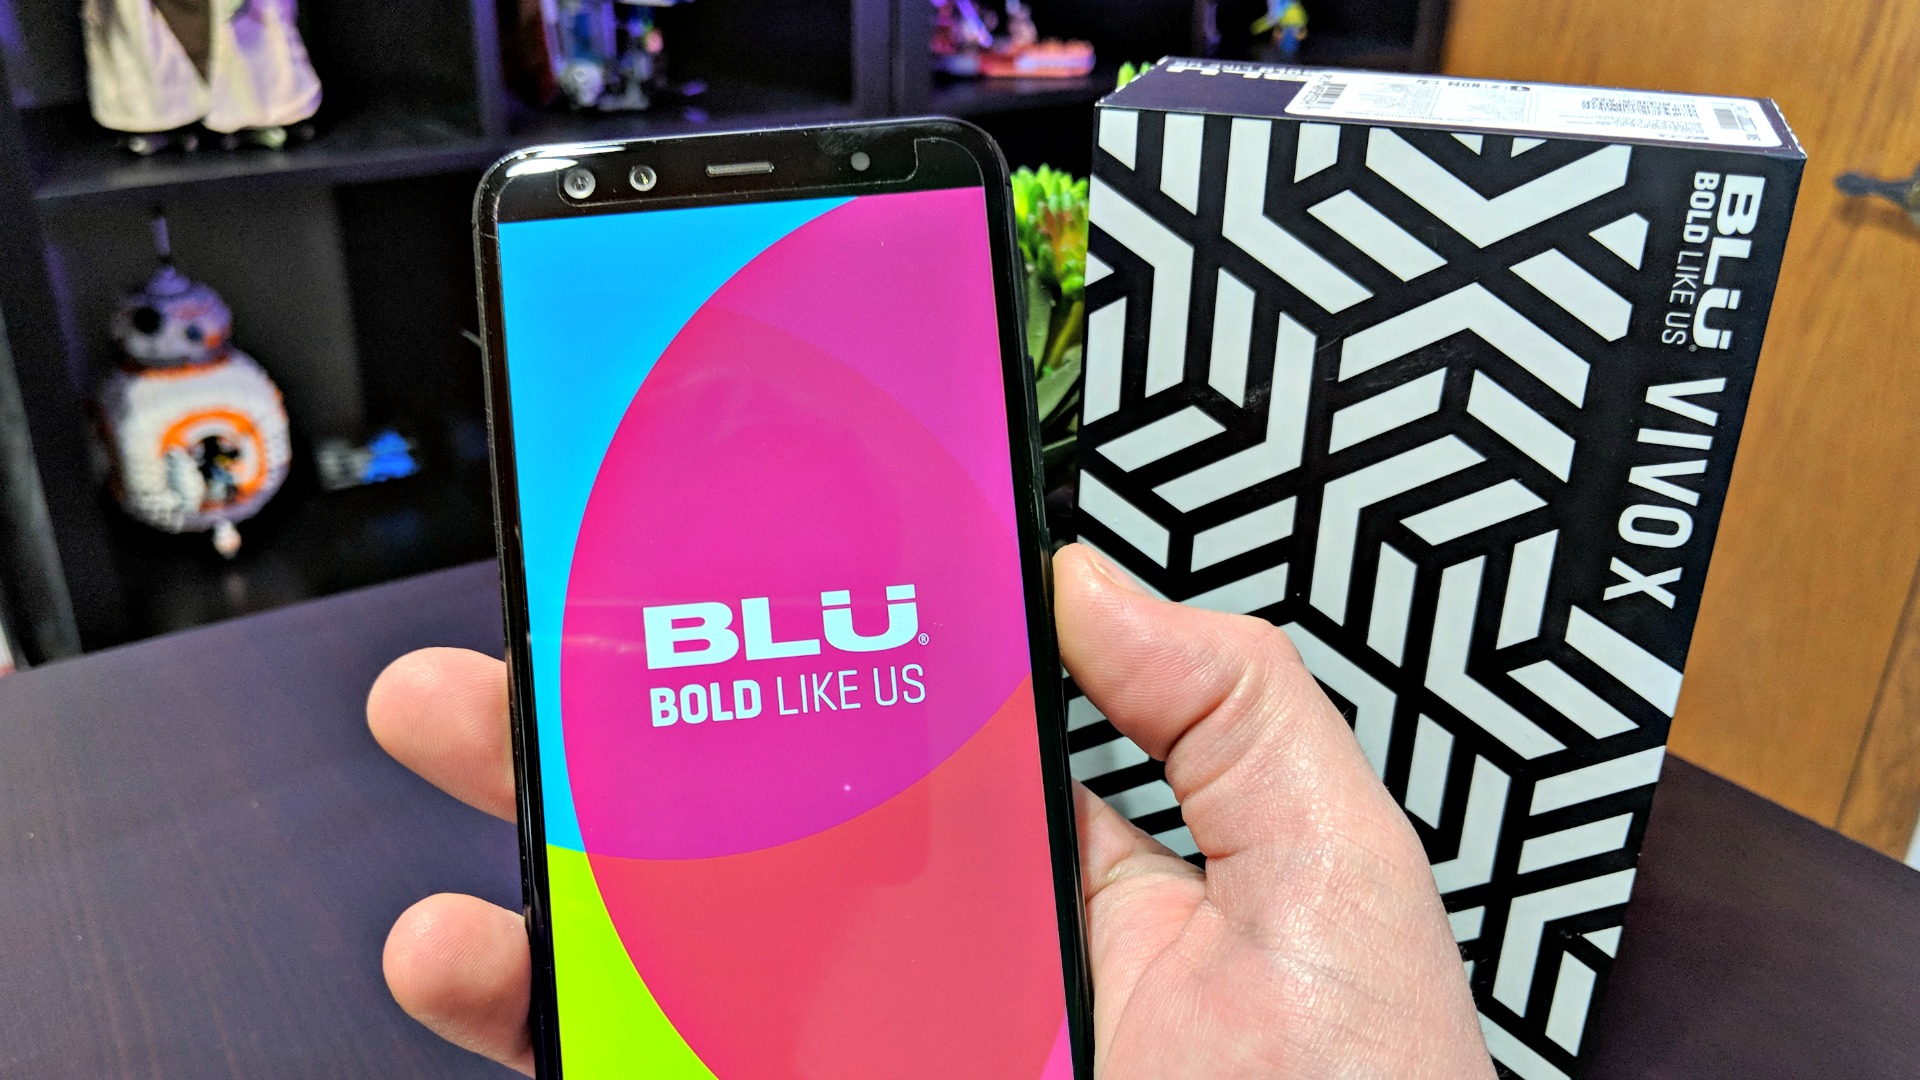 Blu Vivo X Powering On